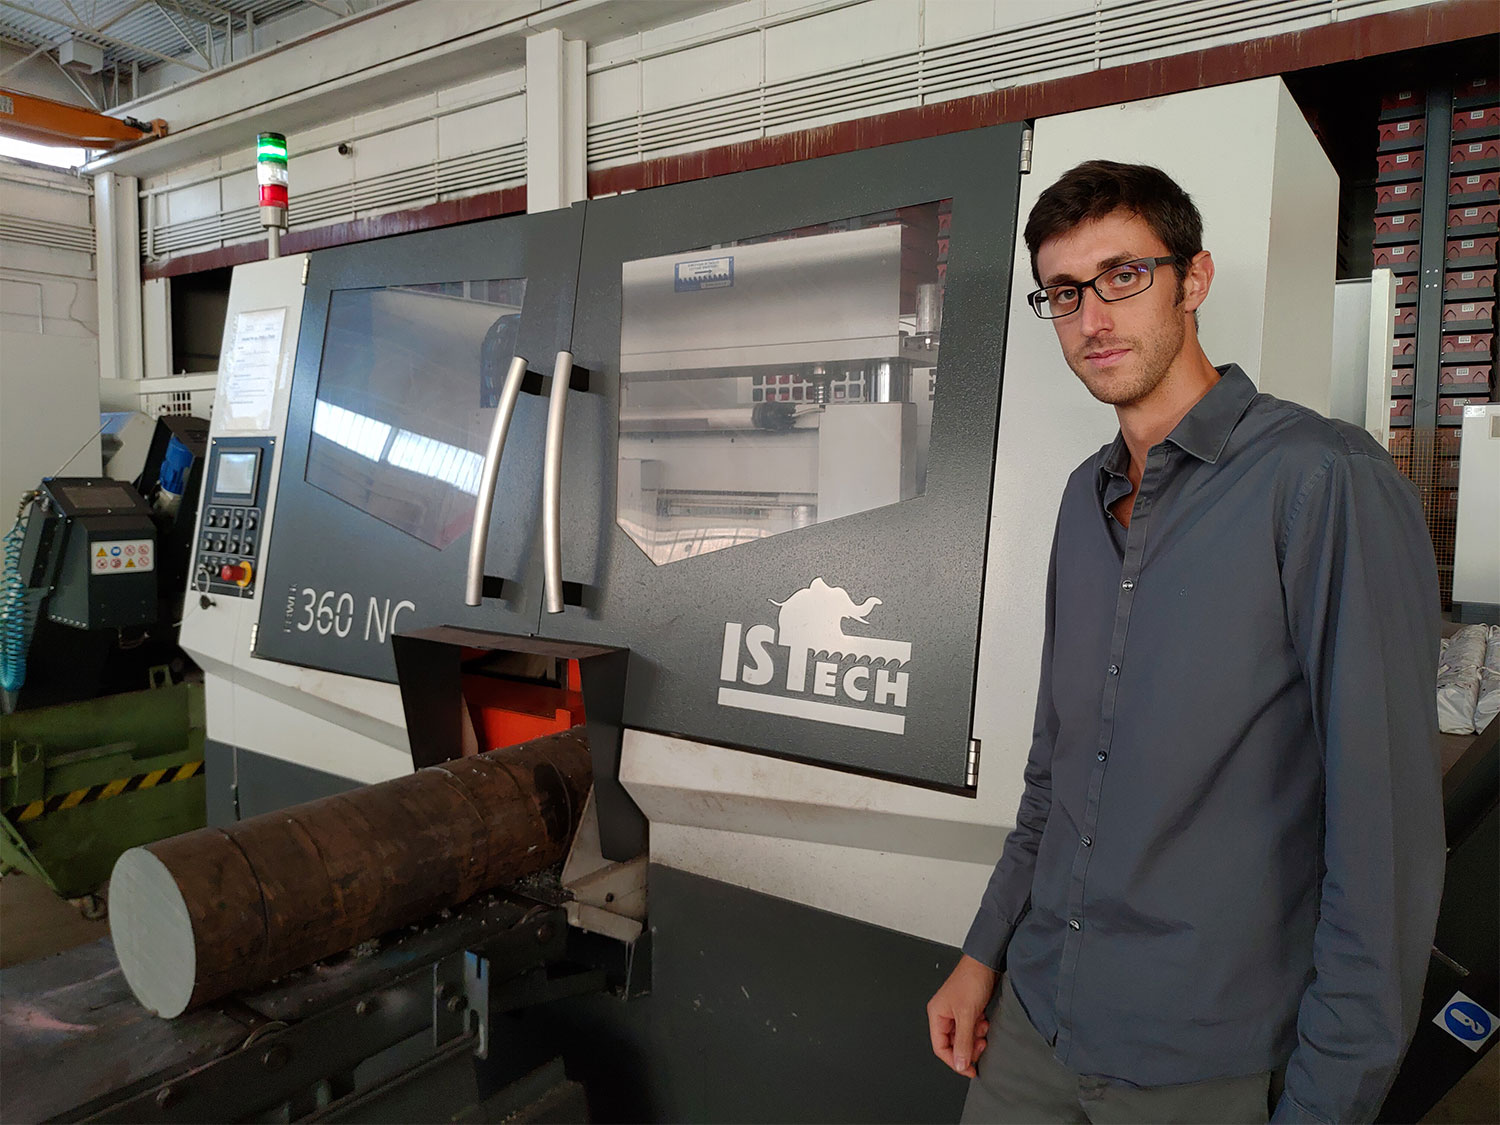 NUOVA BASSANI INCREASES ITS EFFICIENCY WITH ISTECH'S INNOVATIVE CUTTING SYSTEMS (Rivistacmi.it, September 25, 2019)